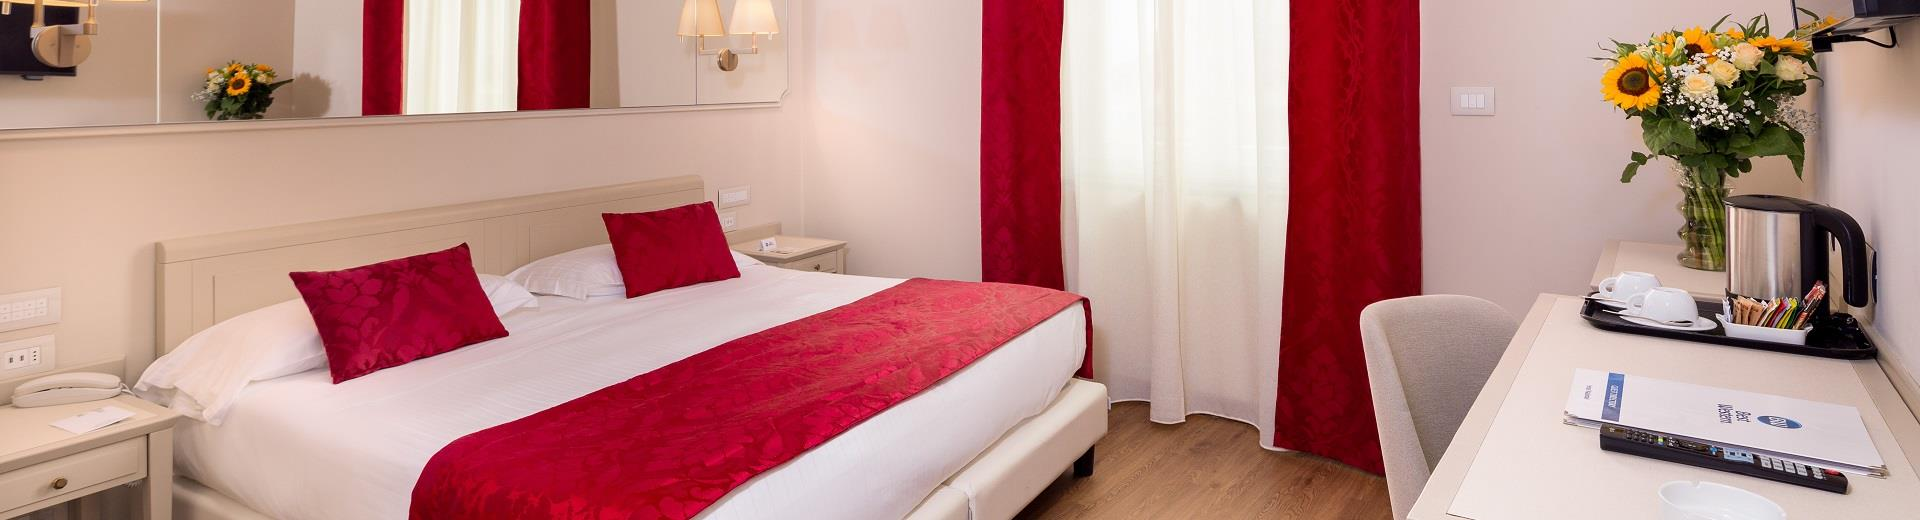 Comfort and services in the rooms of the BW Hotel Nazionale Sanremo